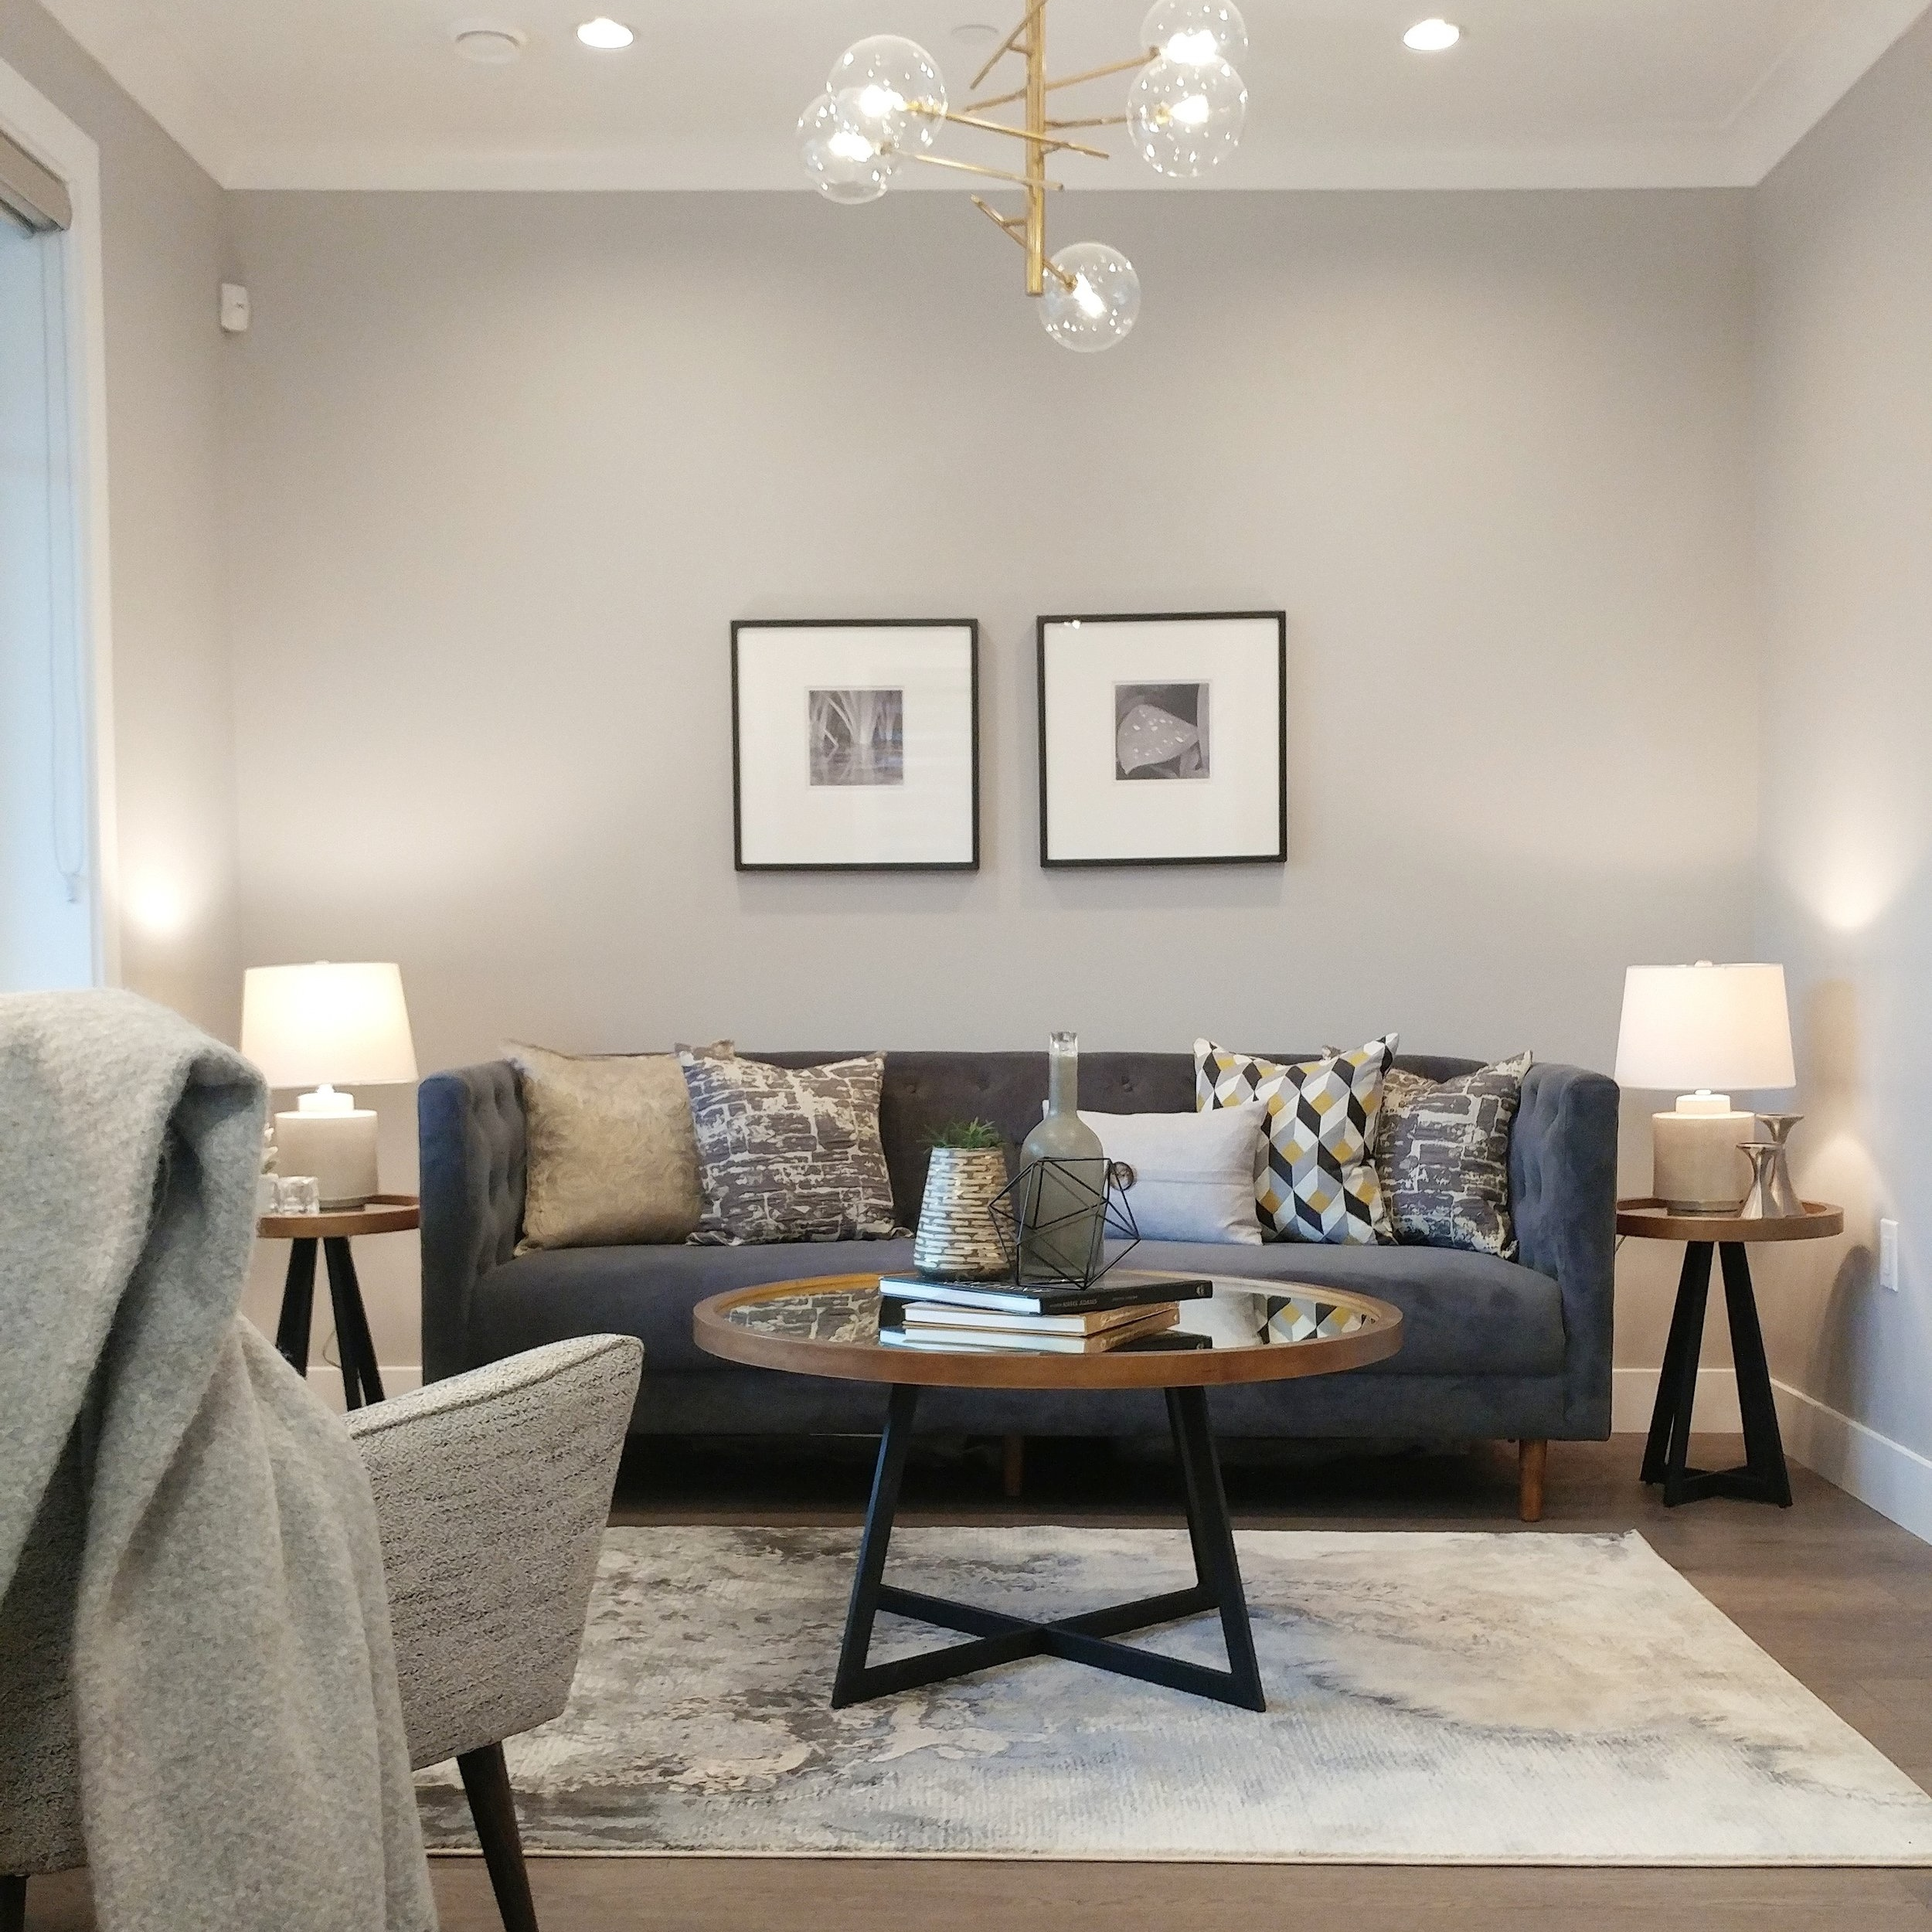 HOME STAGING - Our Visual Team does more than just fill a space with furniture. We create a design strategy for marketing your property.Our greatest joy is when you get the result you are looking for!